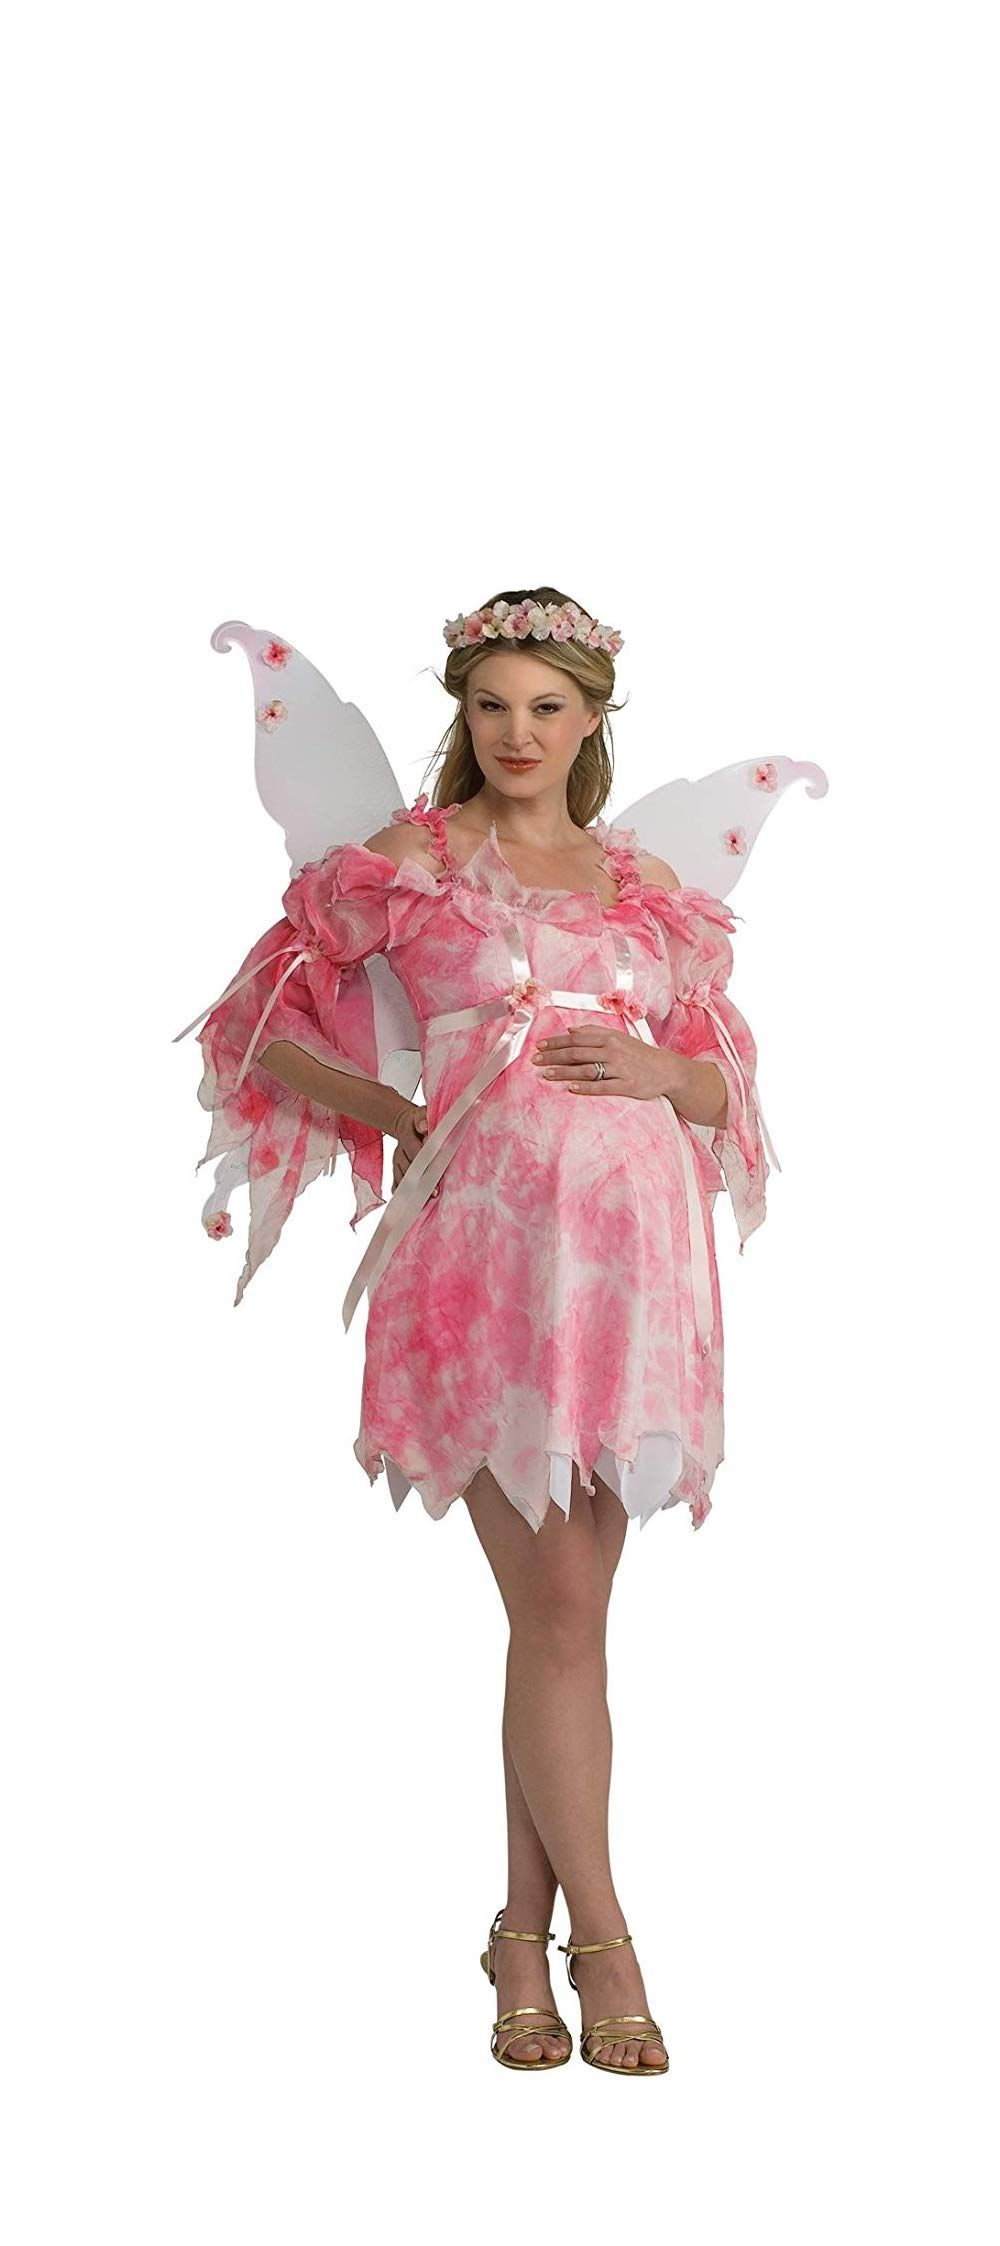 15 best pregnant halloween costumes - fun maternity costumes for